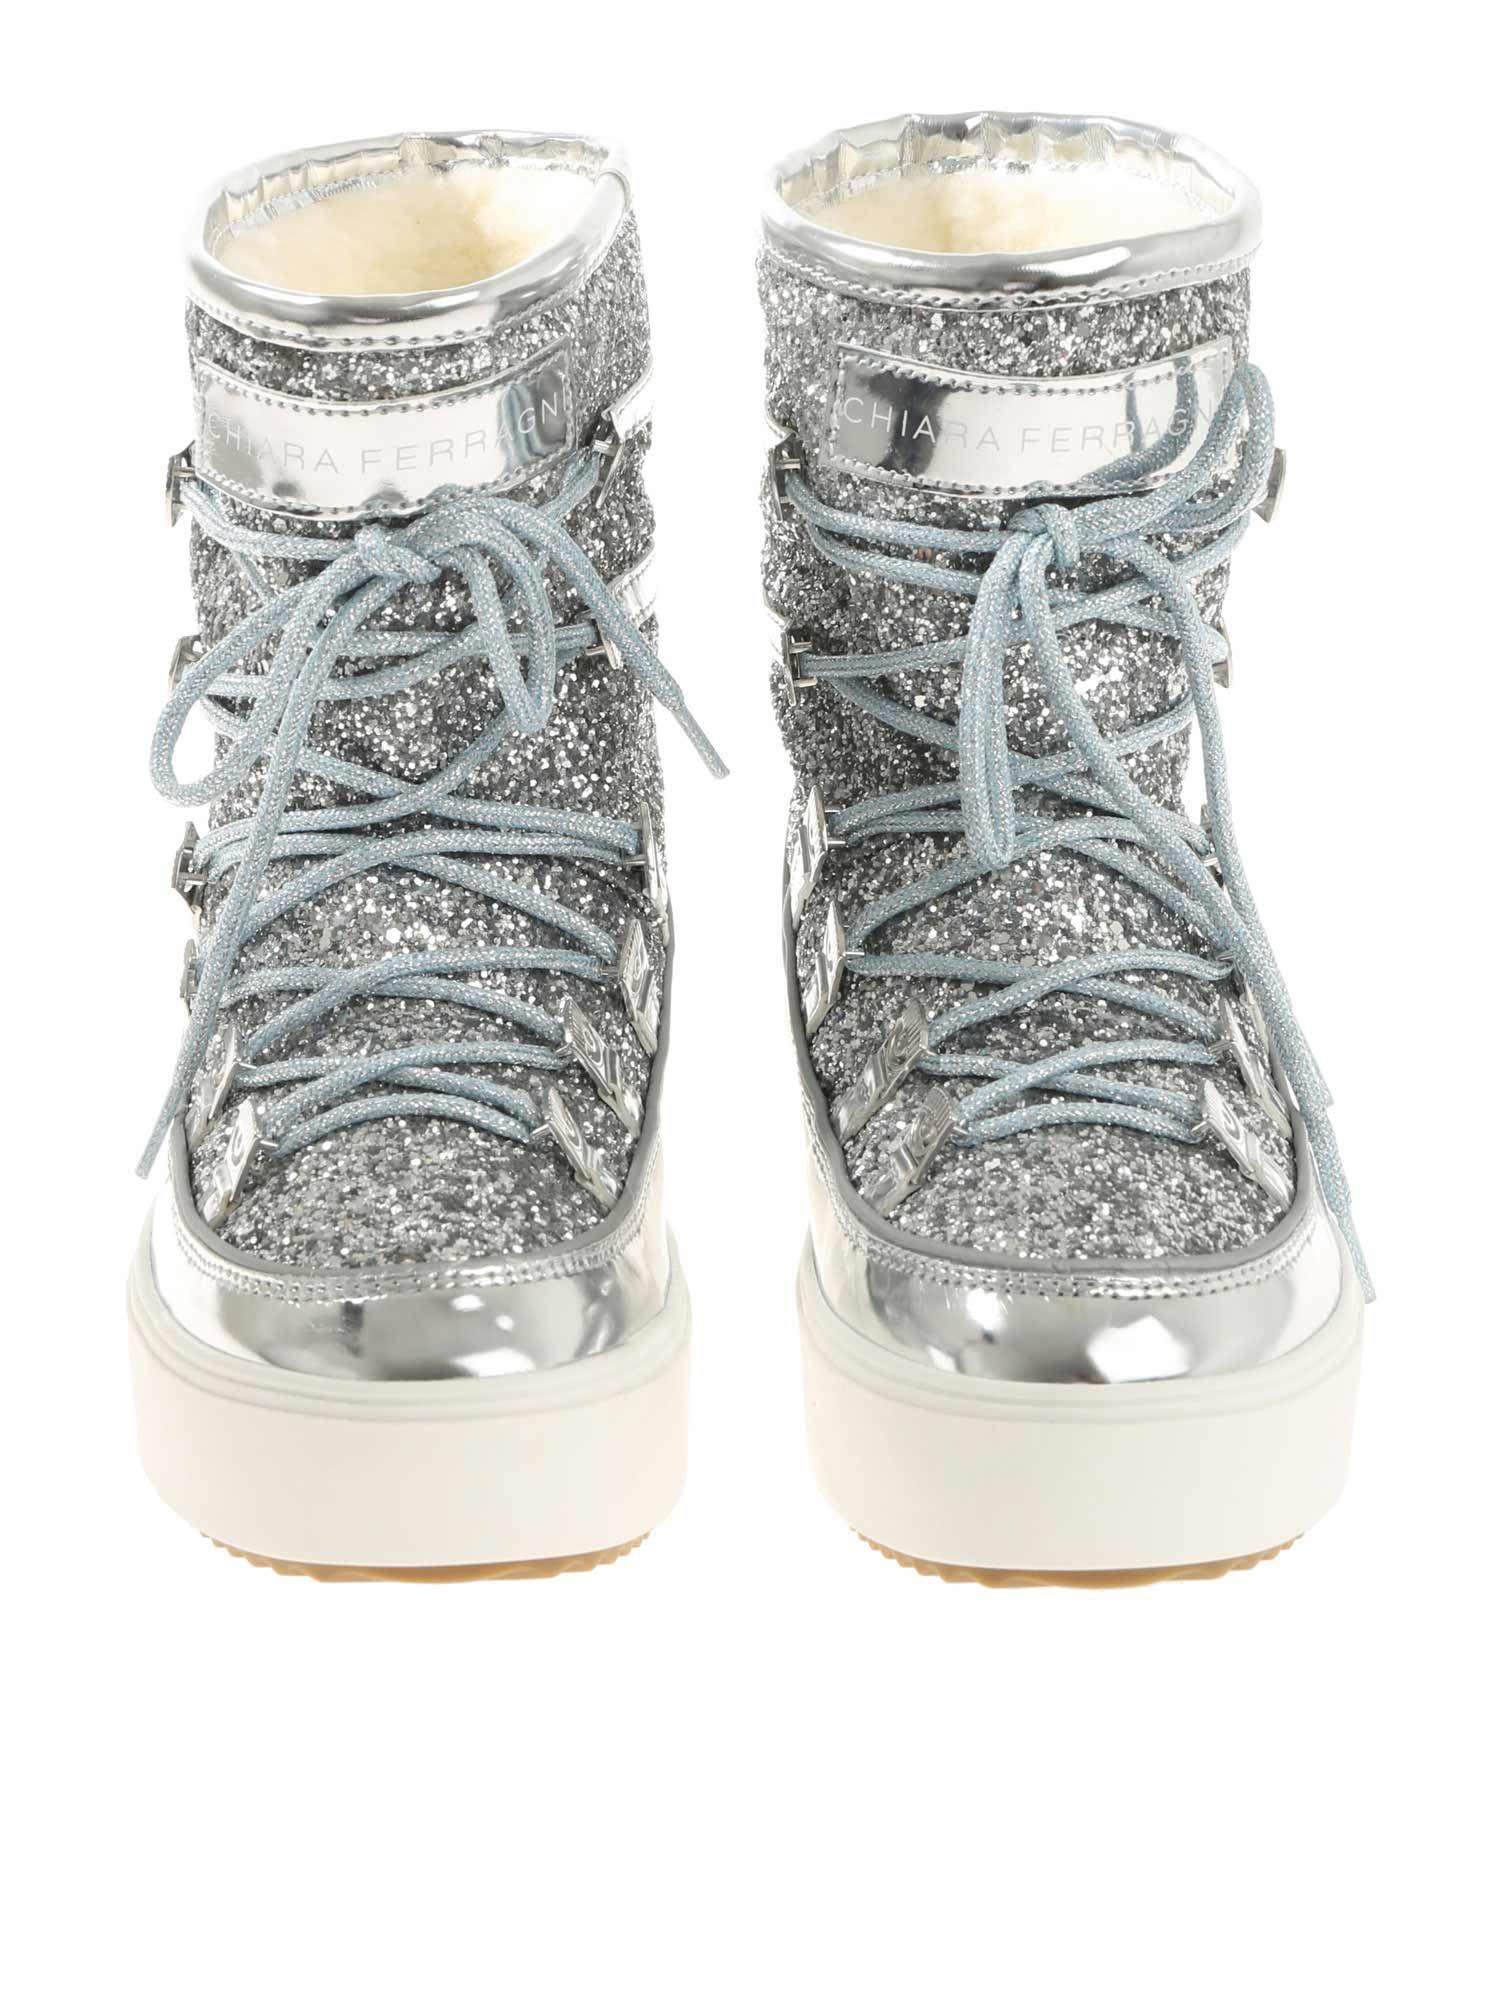 c45eea31ab23 ... Chiara Ferragni - Metallic Silver Moon Boots With Glitter - Lyst ·  Visit The Clutcher. Tap to visit site